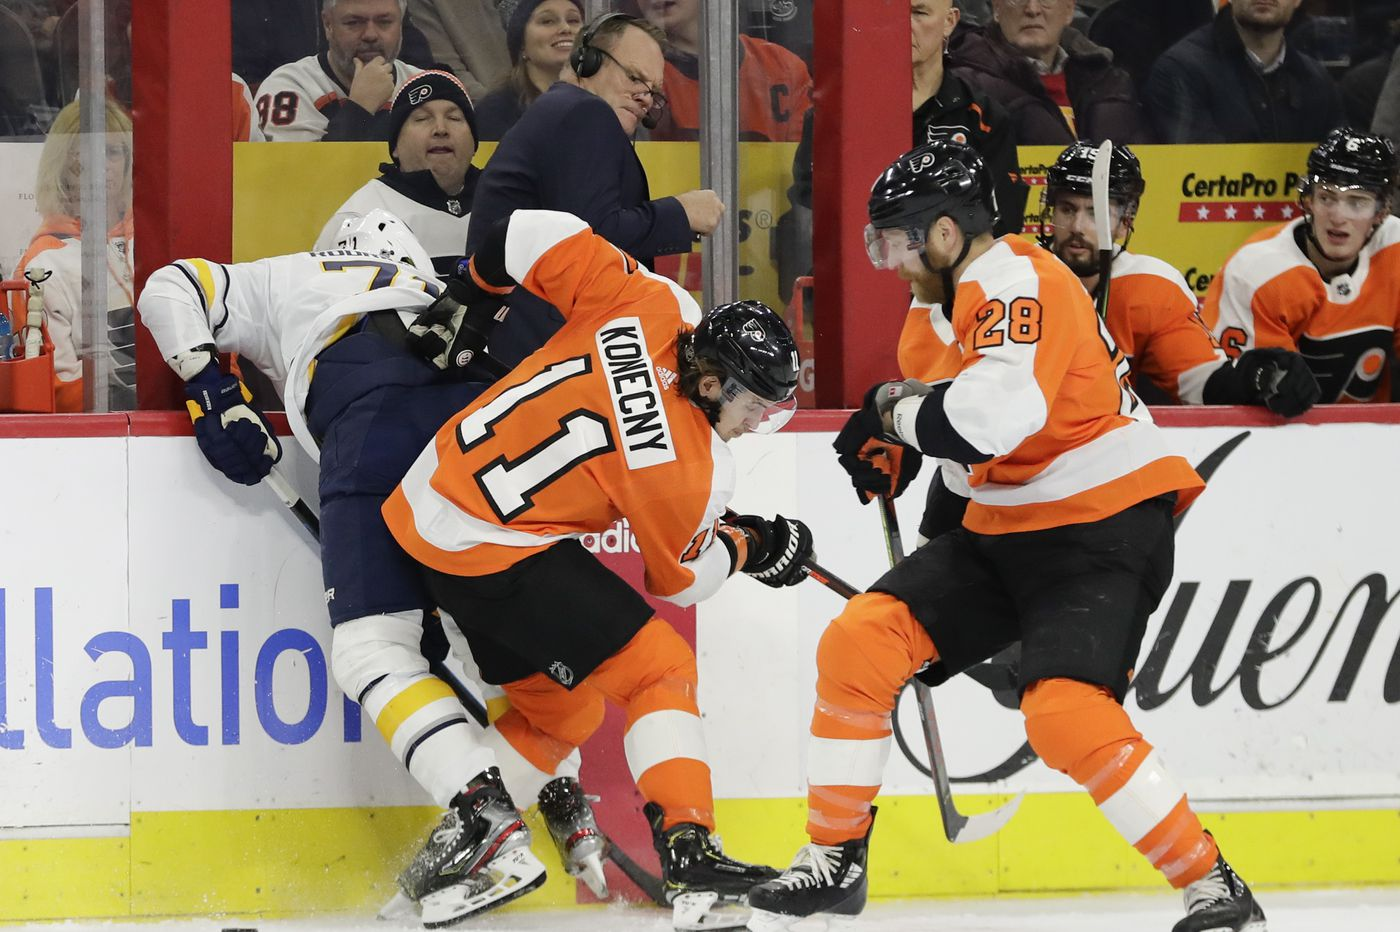 Flyers at midseason: Lots of improvement, but not yet a Stanley Cup contender | Sam Carchidi